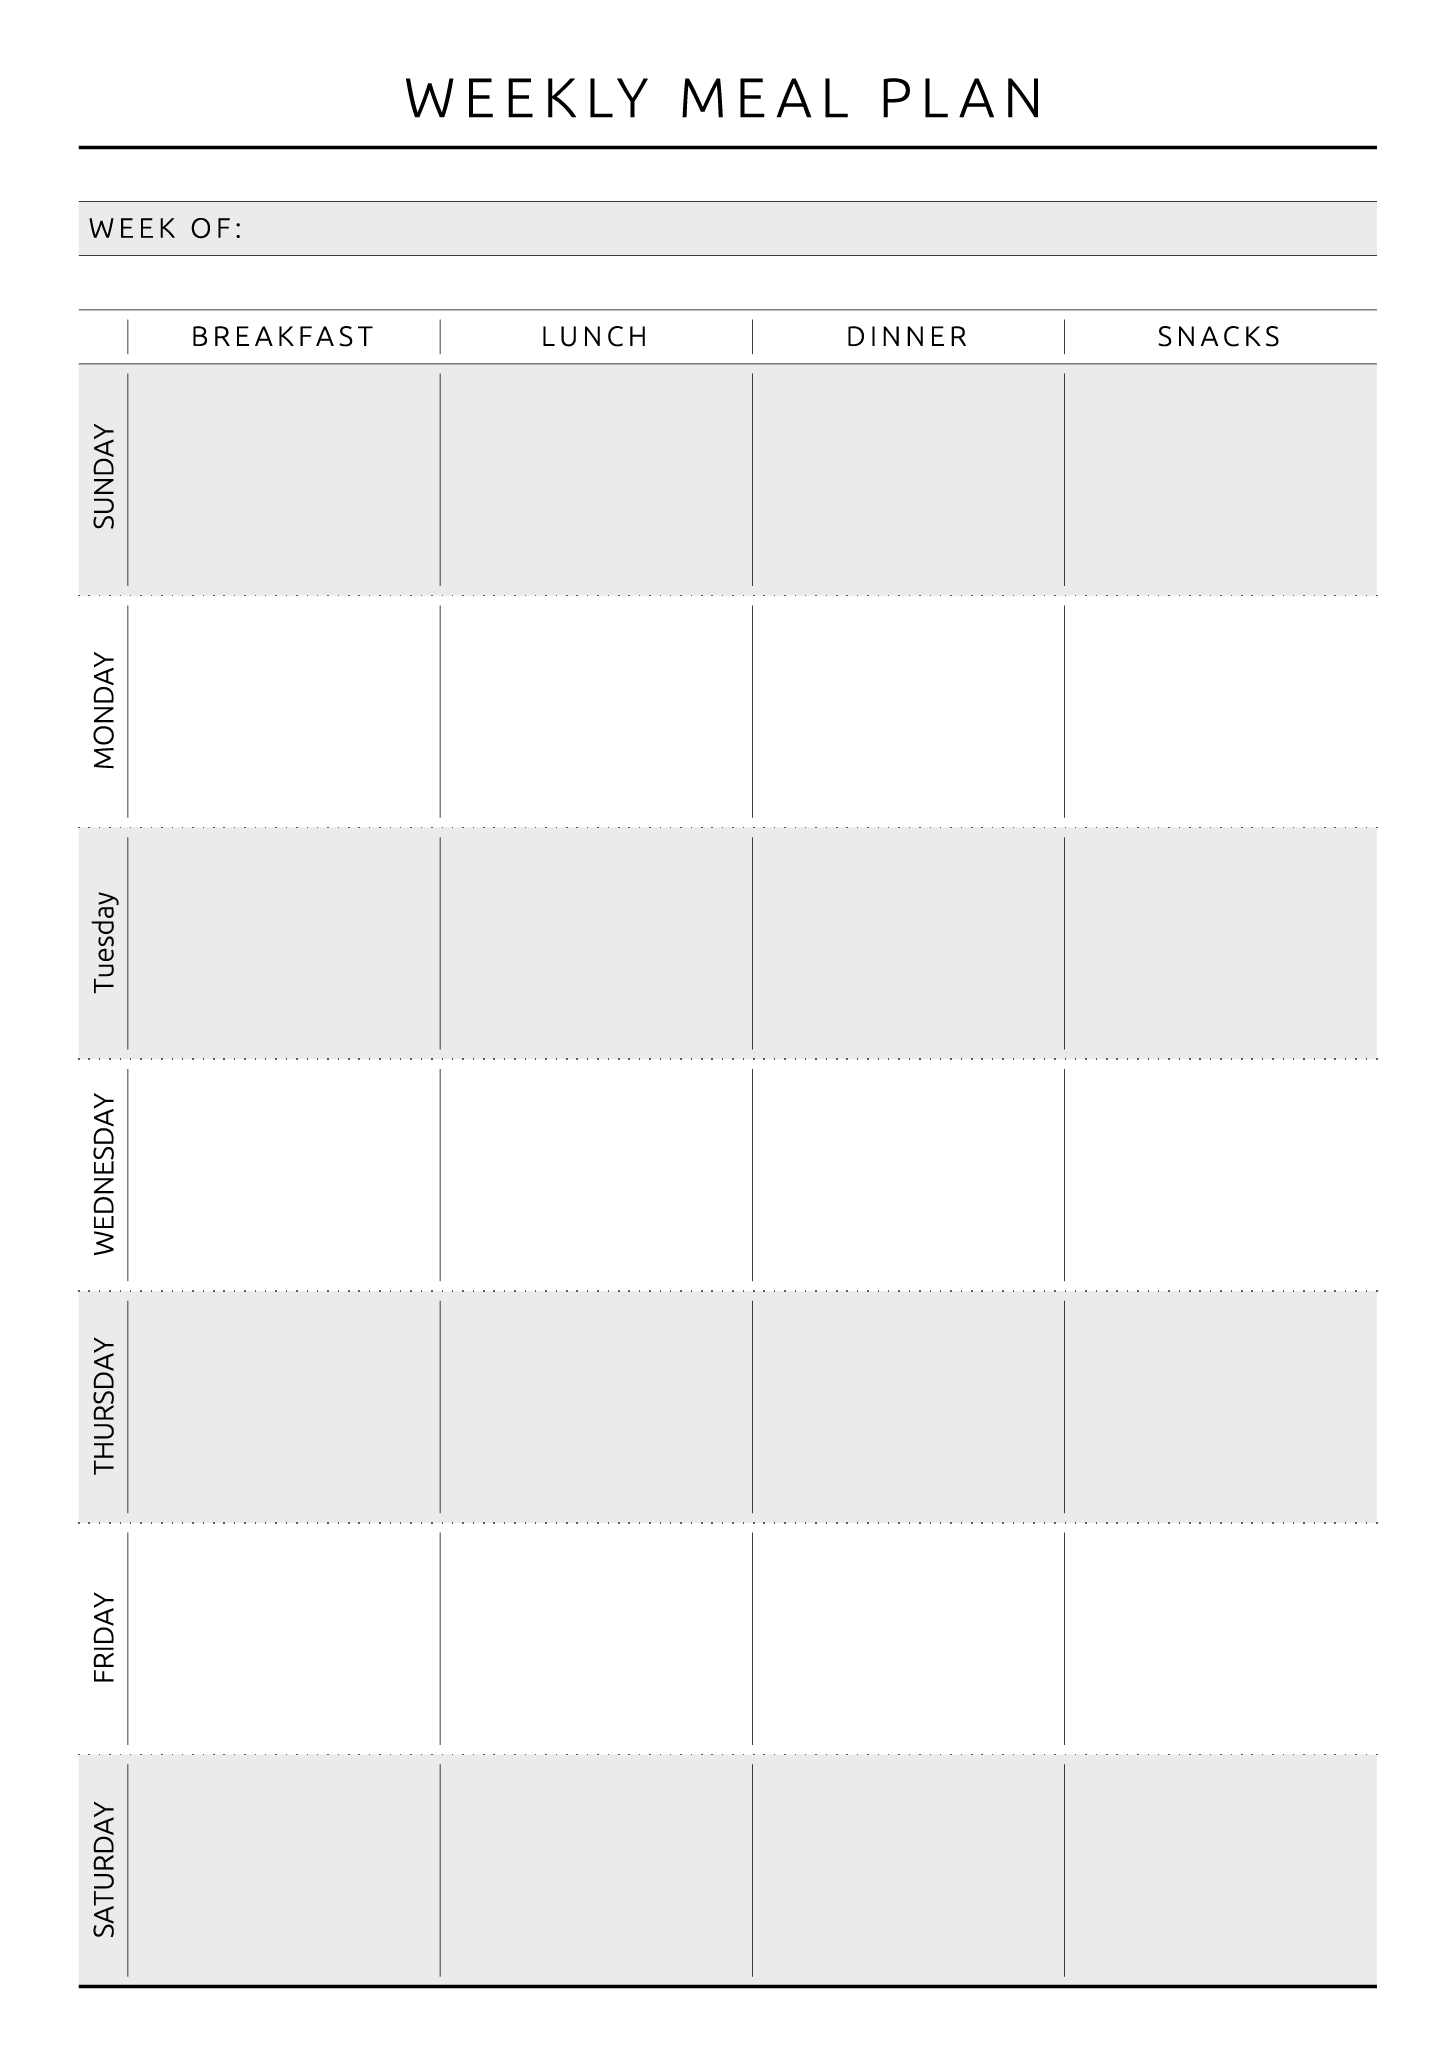 Weekly Meal Plan - Original Style (With images) | Weekly ...